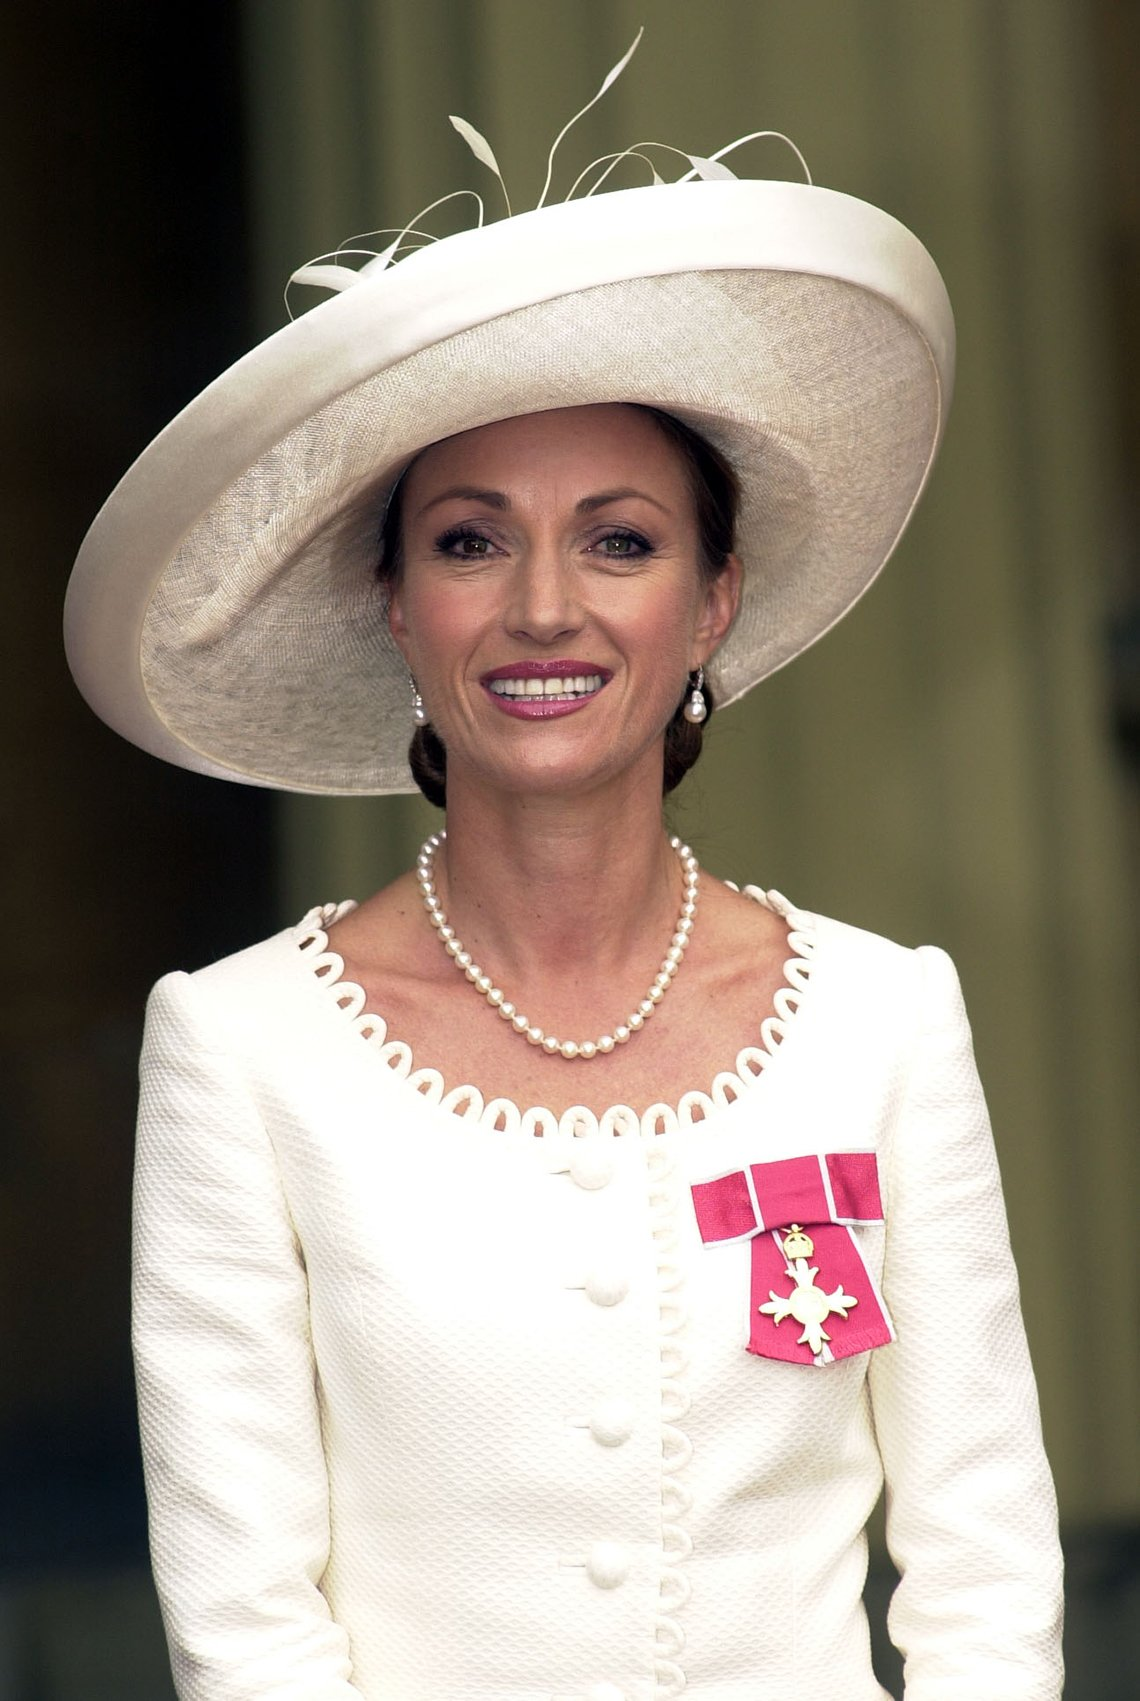 Actress Jane Seymour at Buckingham Palace after receiving an OBE from Queen Elizabeth II